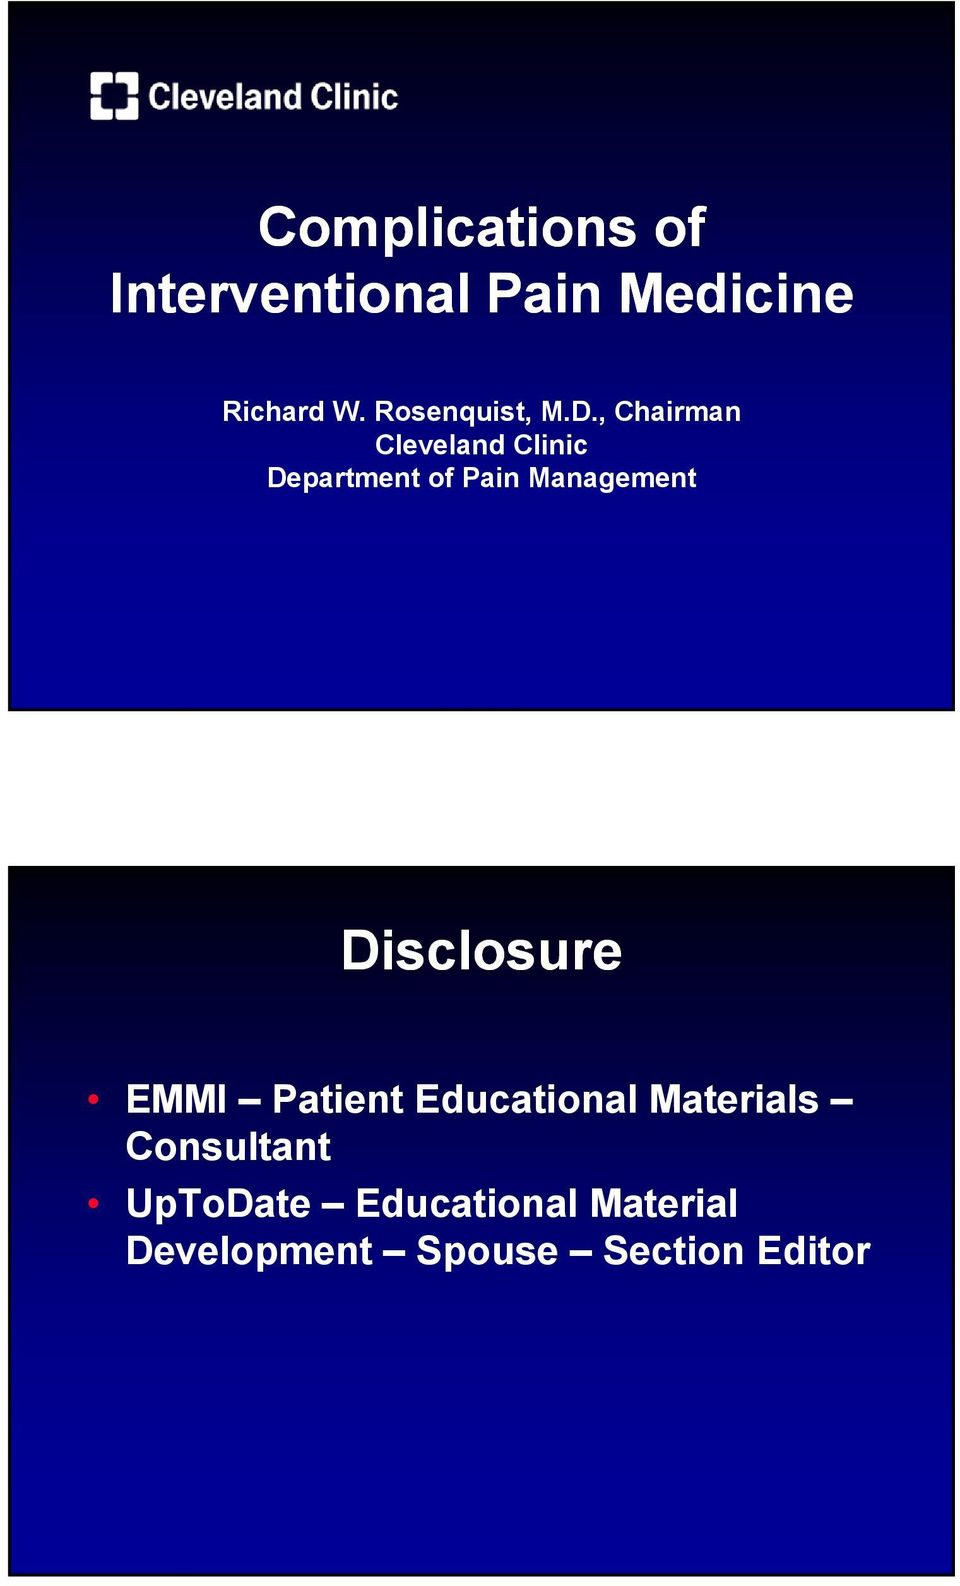 , Chairman Cleveland Clinic Department of Pain Management